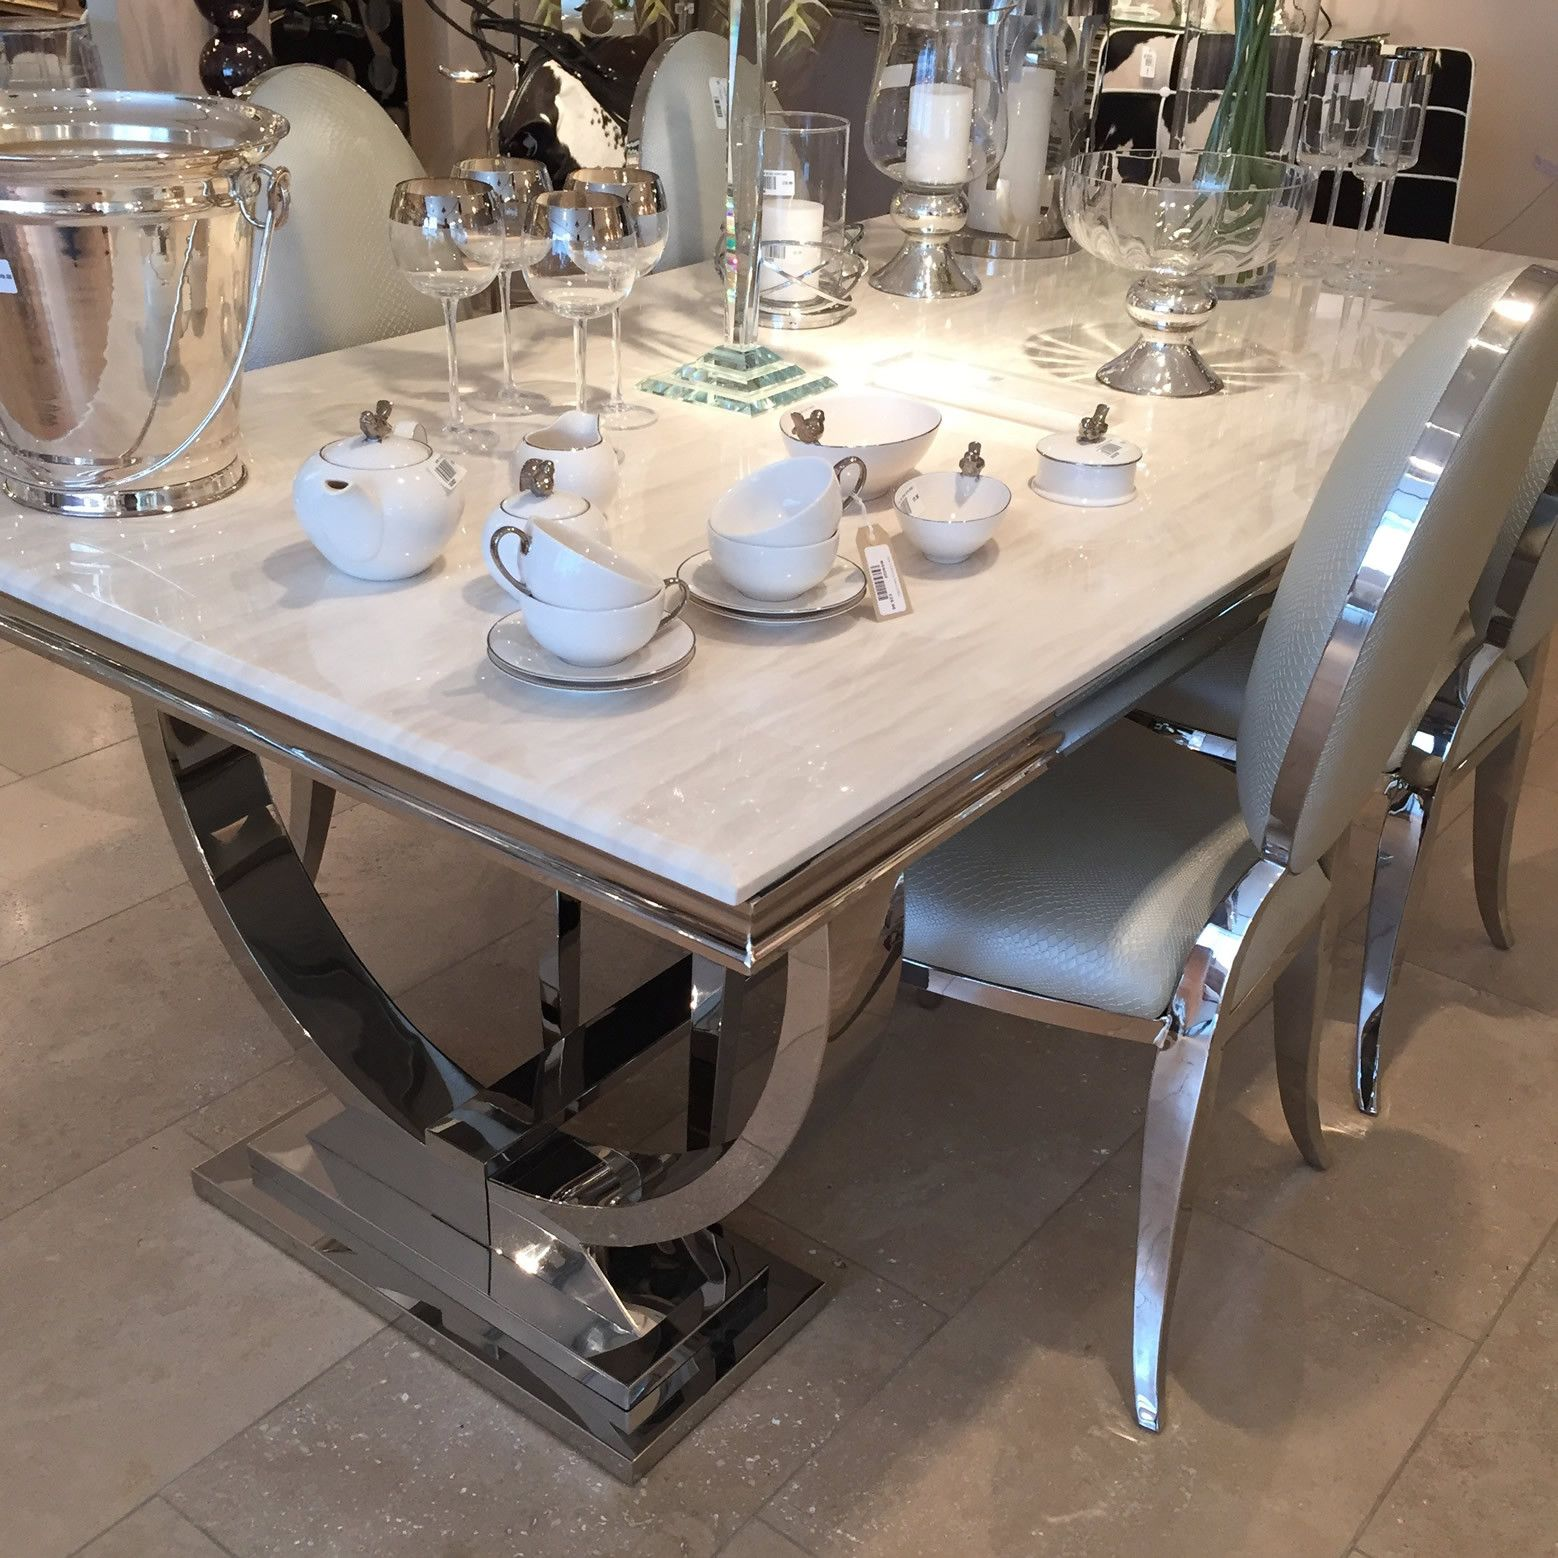 cream marble and chrome dining table with u-shaped legs | marbles